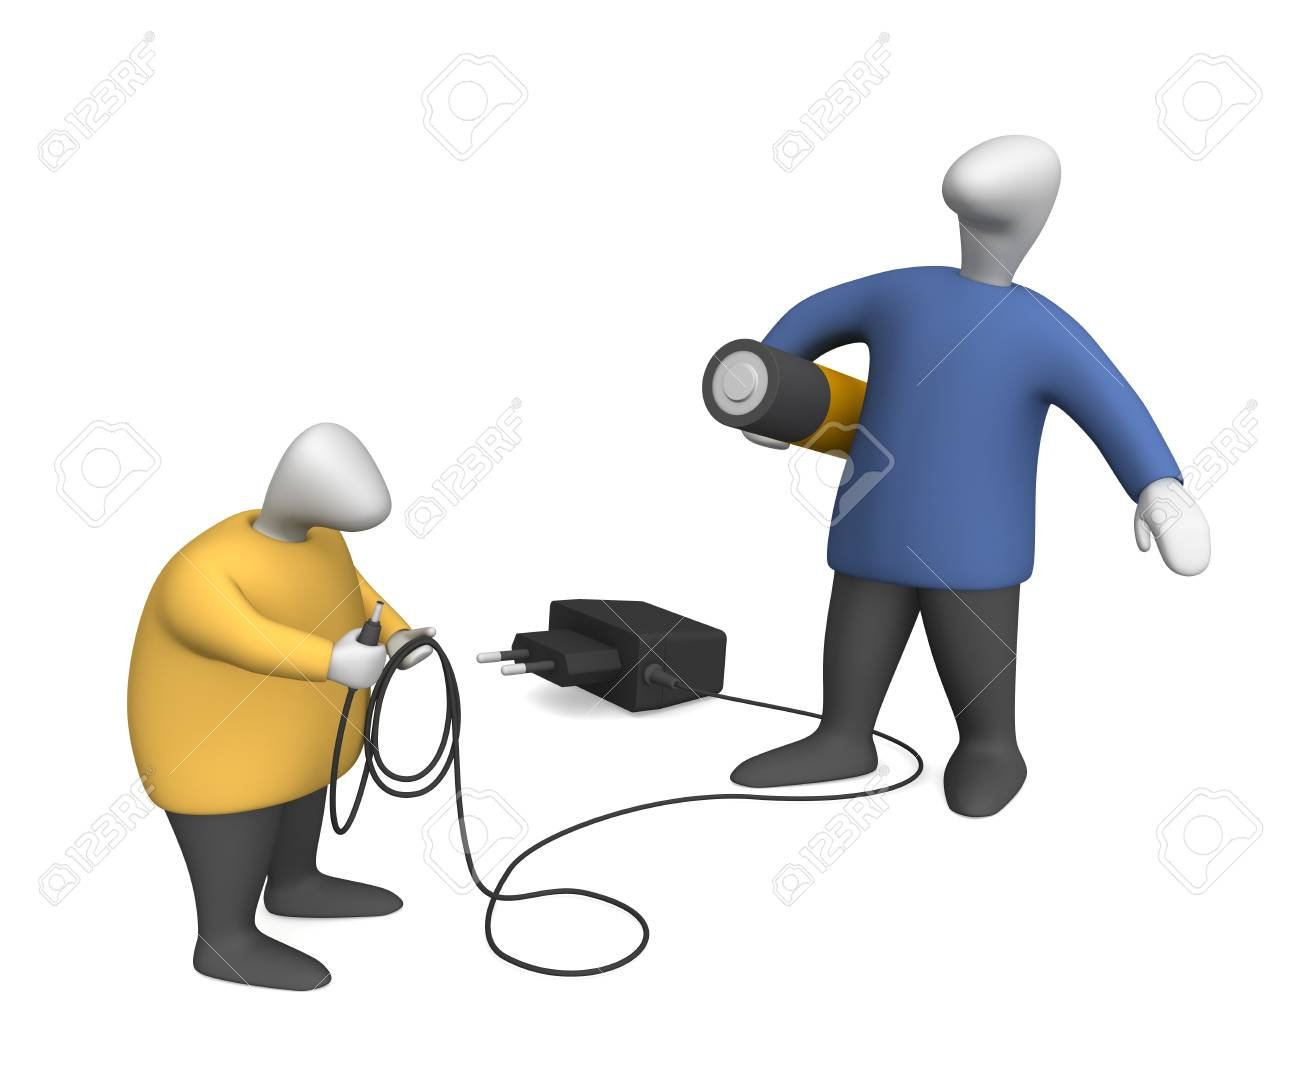 Three-dimensional image - men with power supply. - 8195602